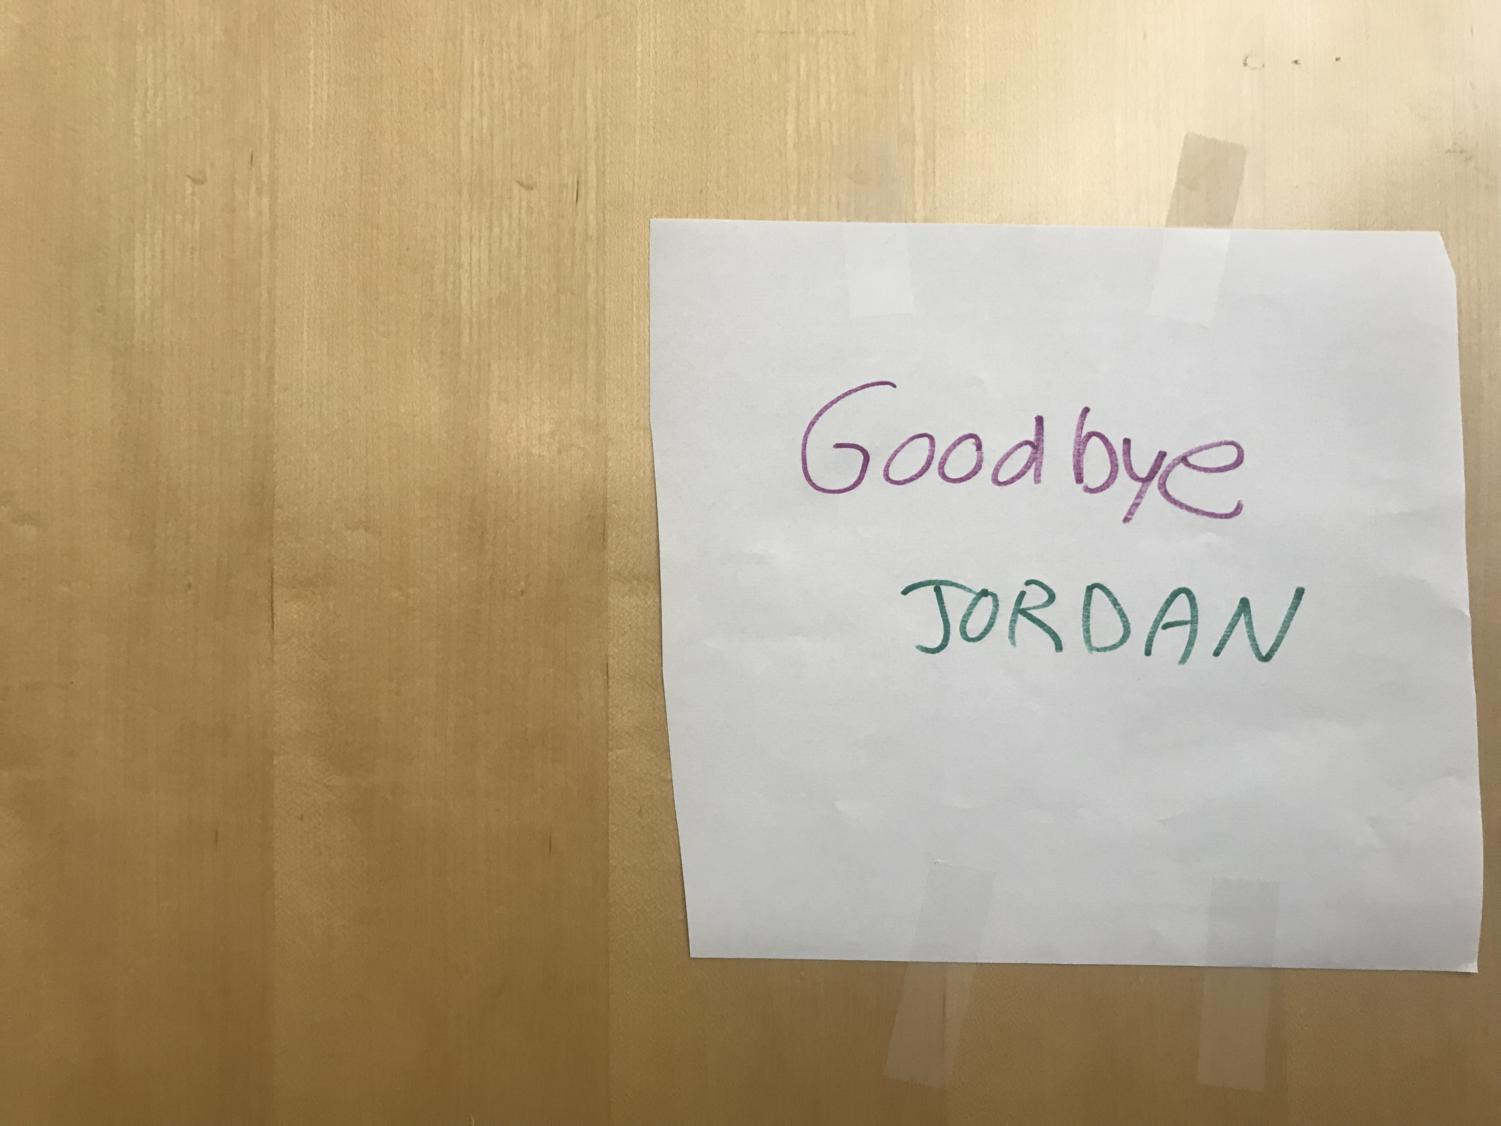 Outside+of+the+Taube+Room%2C+the+room+his+party+was+held%2C+was+a+handwritten+%22Goodbye+Jordan%22+note.